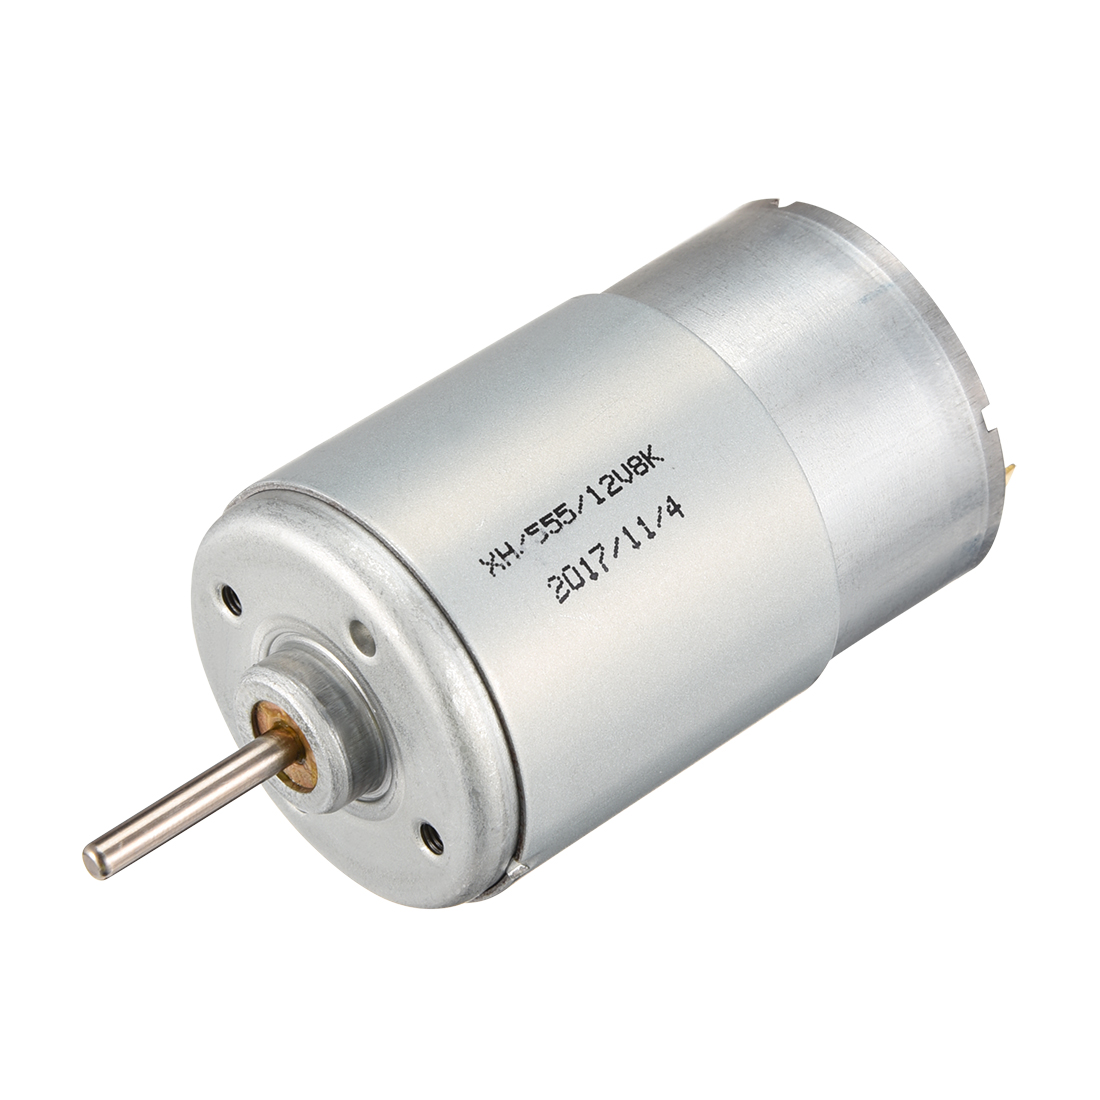 Small Motor DC 12V 4600RPM High Speed Motor for DIY Hobby Toy Car Remote Control